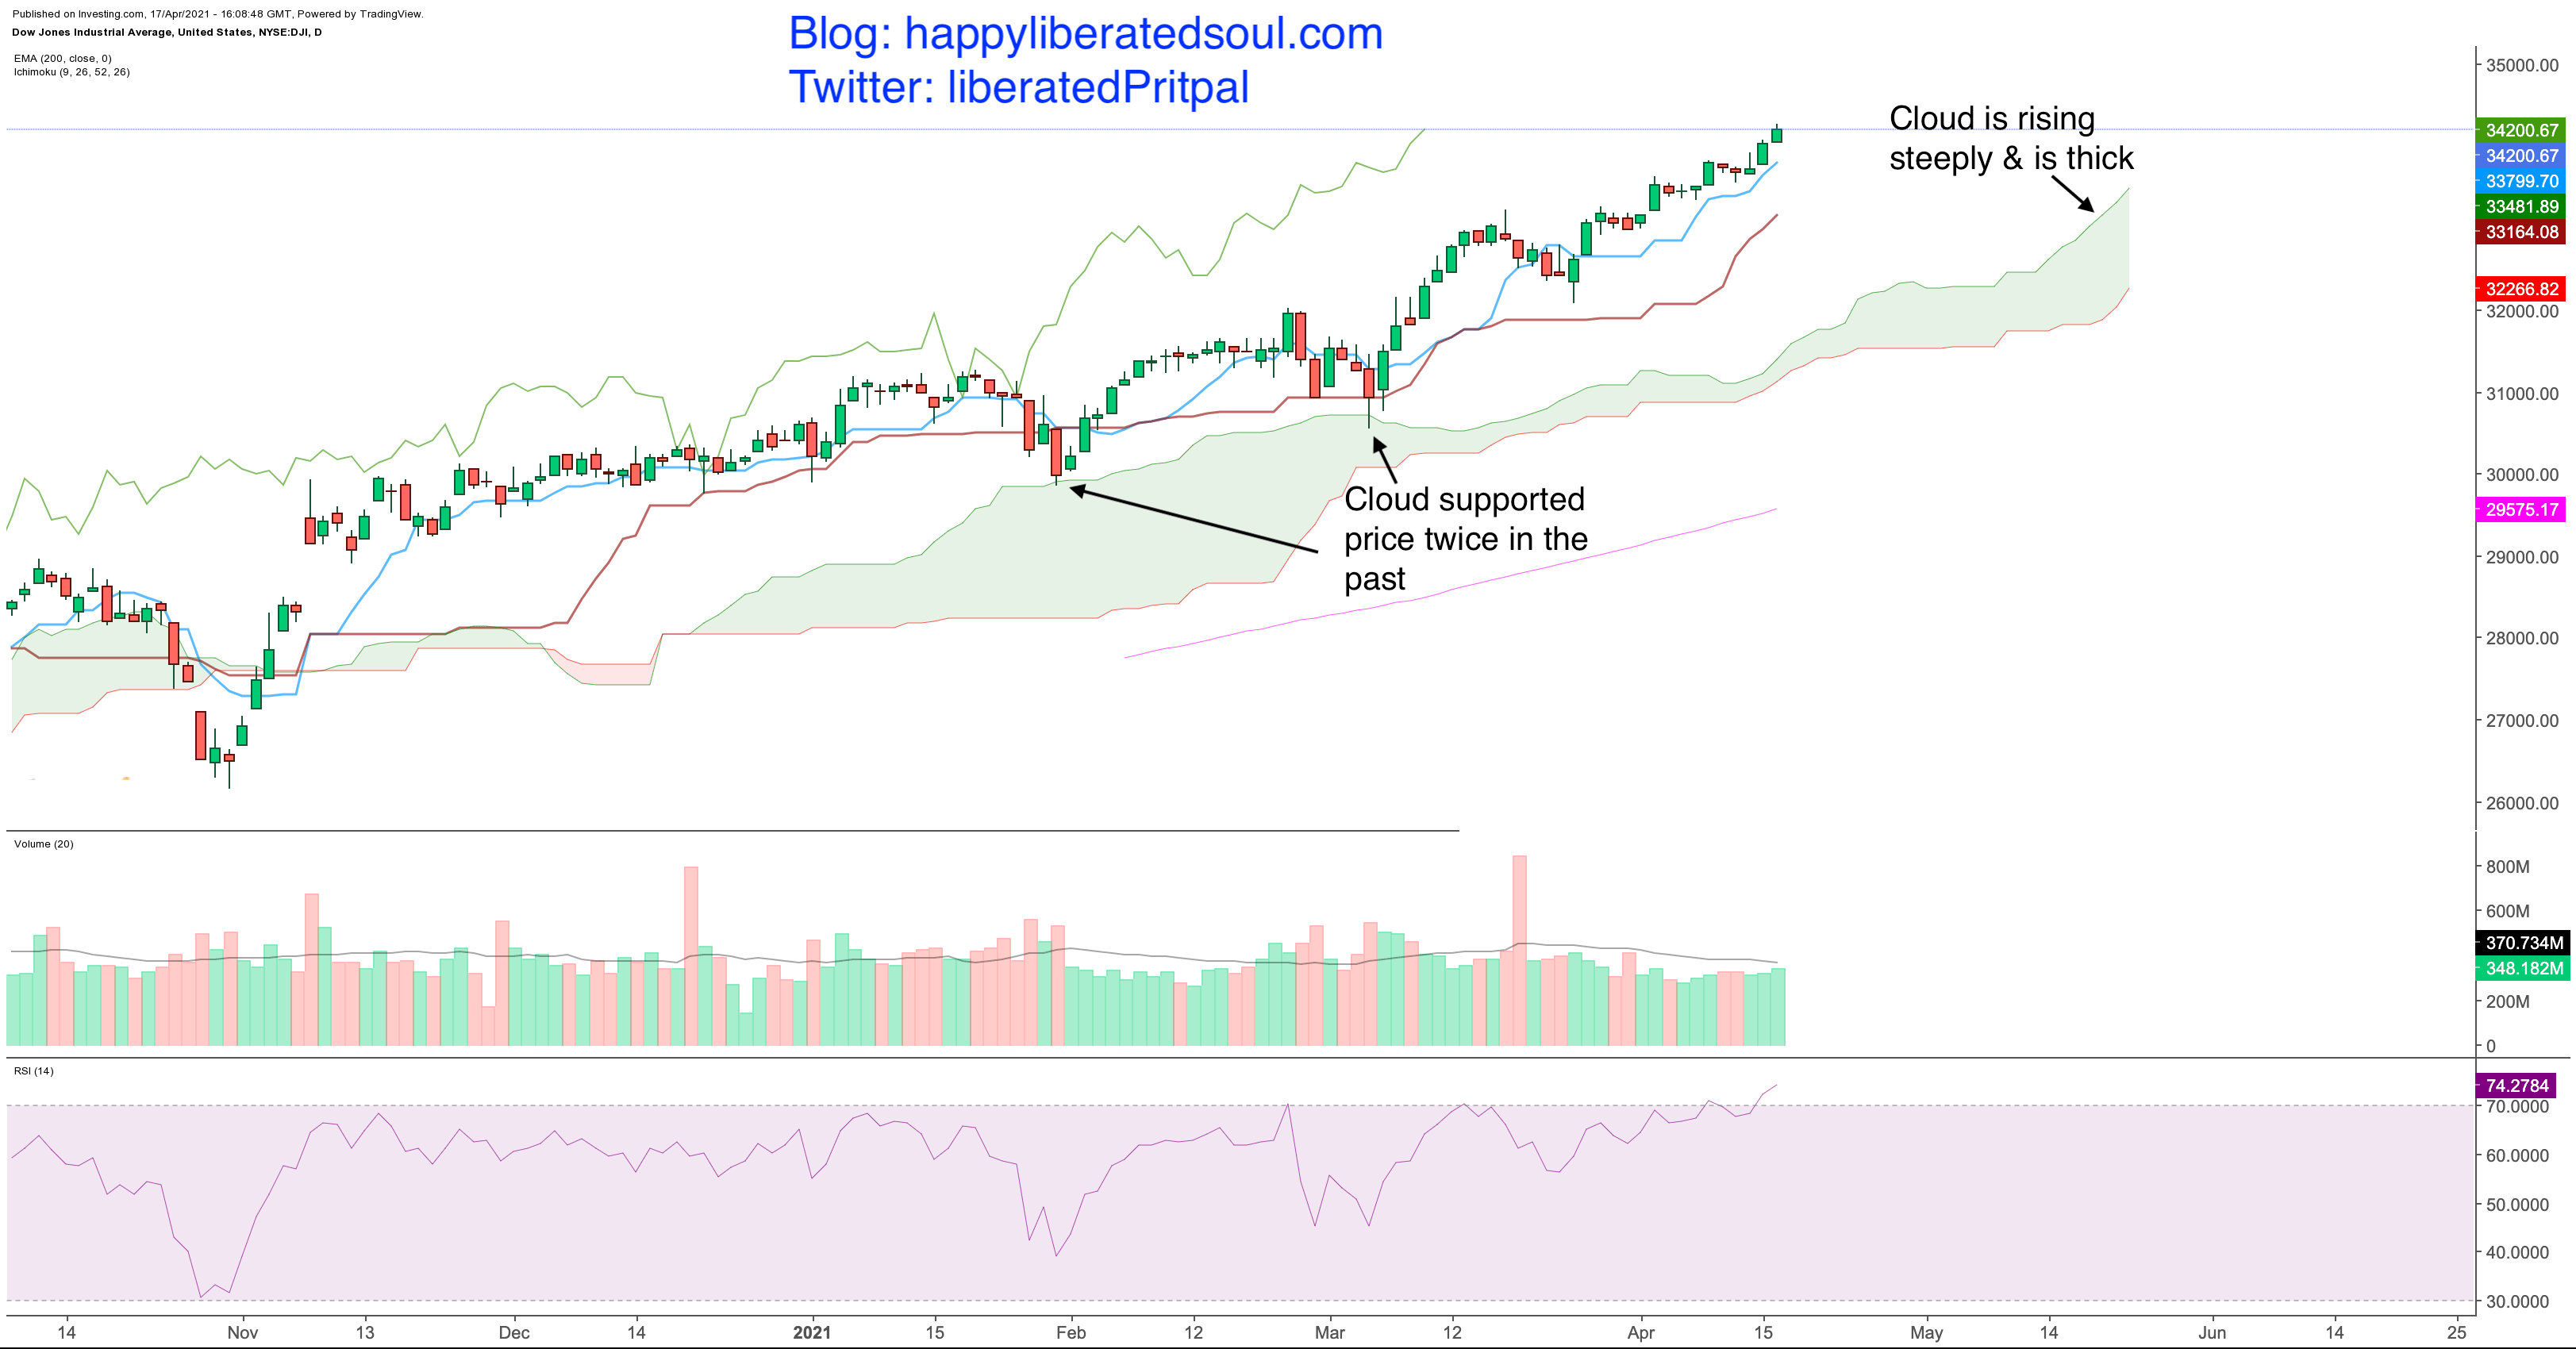 Dow Jones industrial average chart with ichimoku clouds on daily timeframe: Happy Liberated Soul